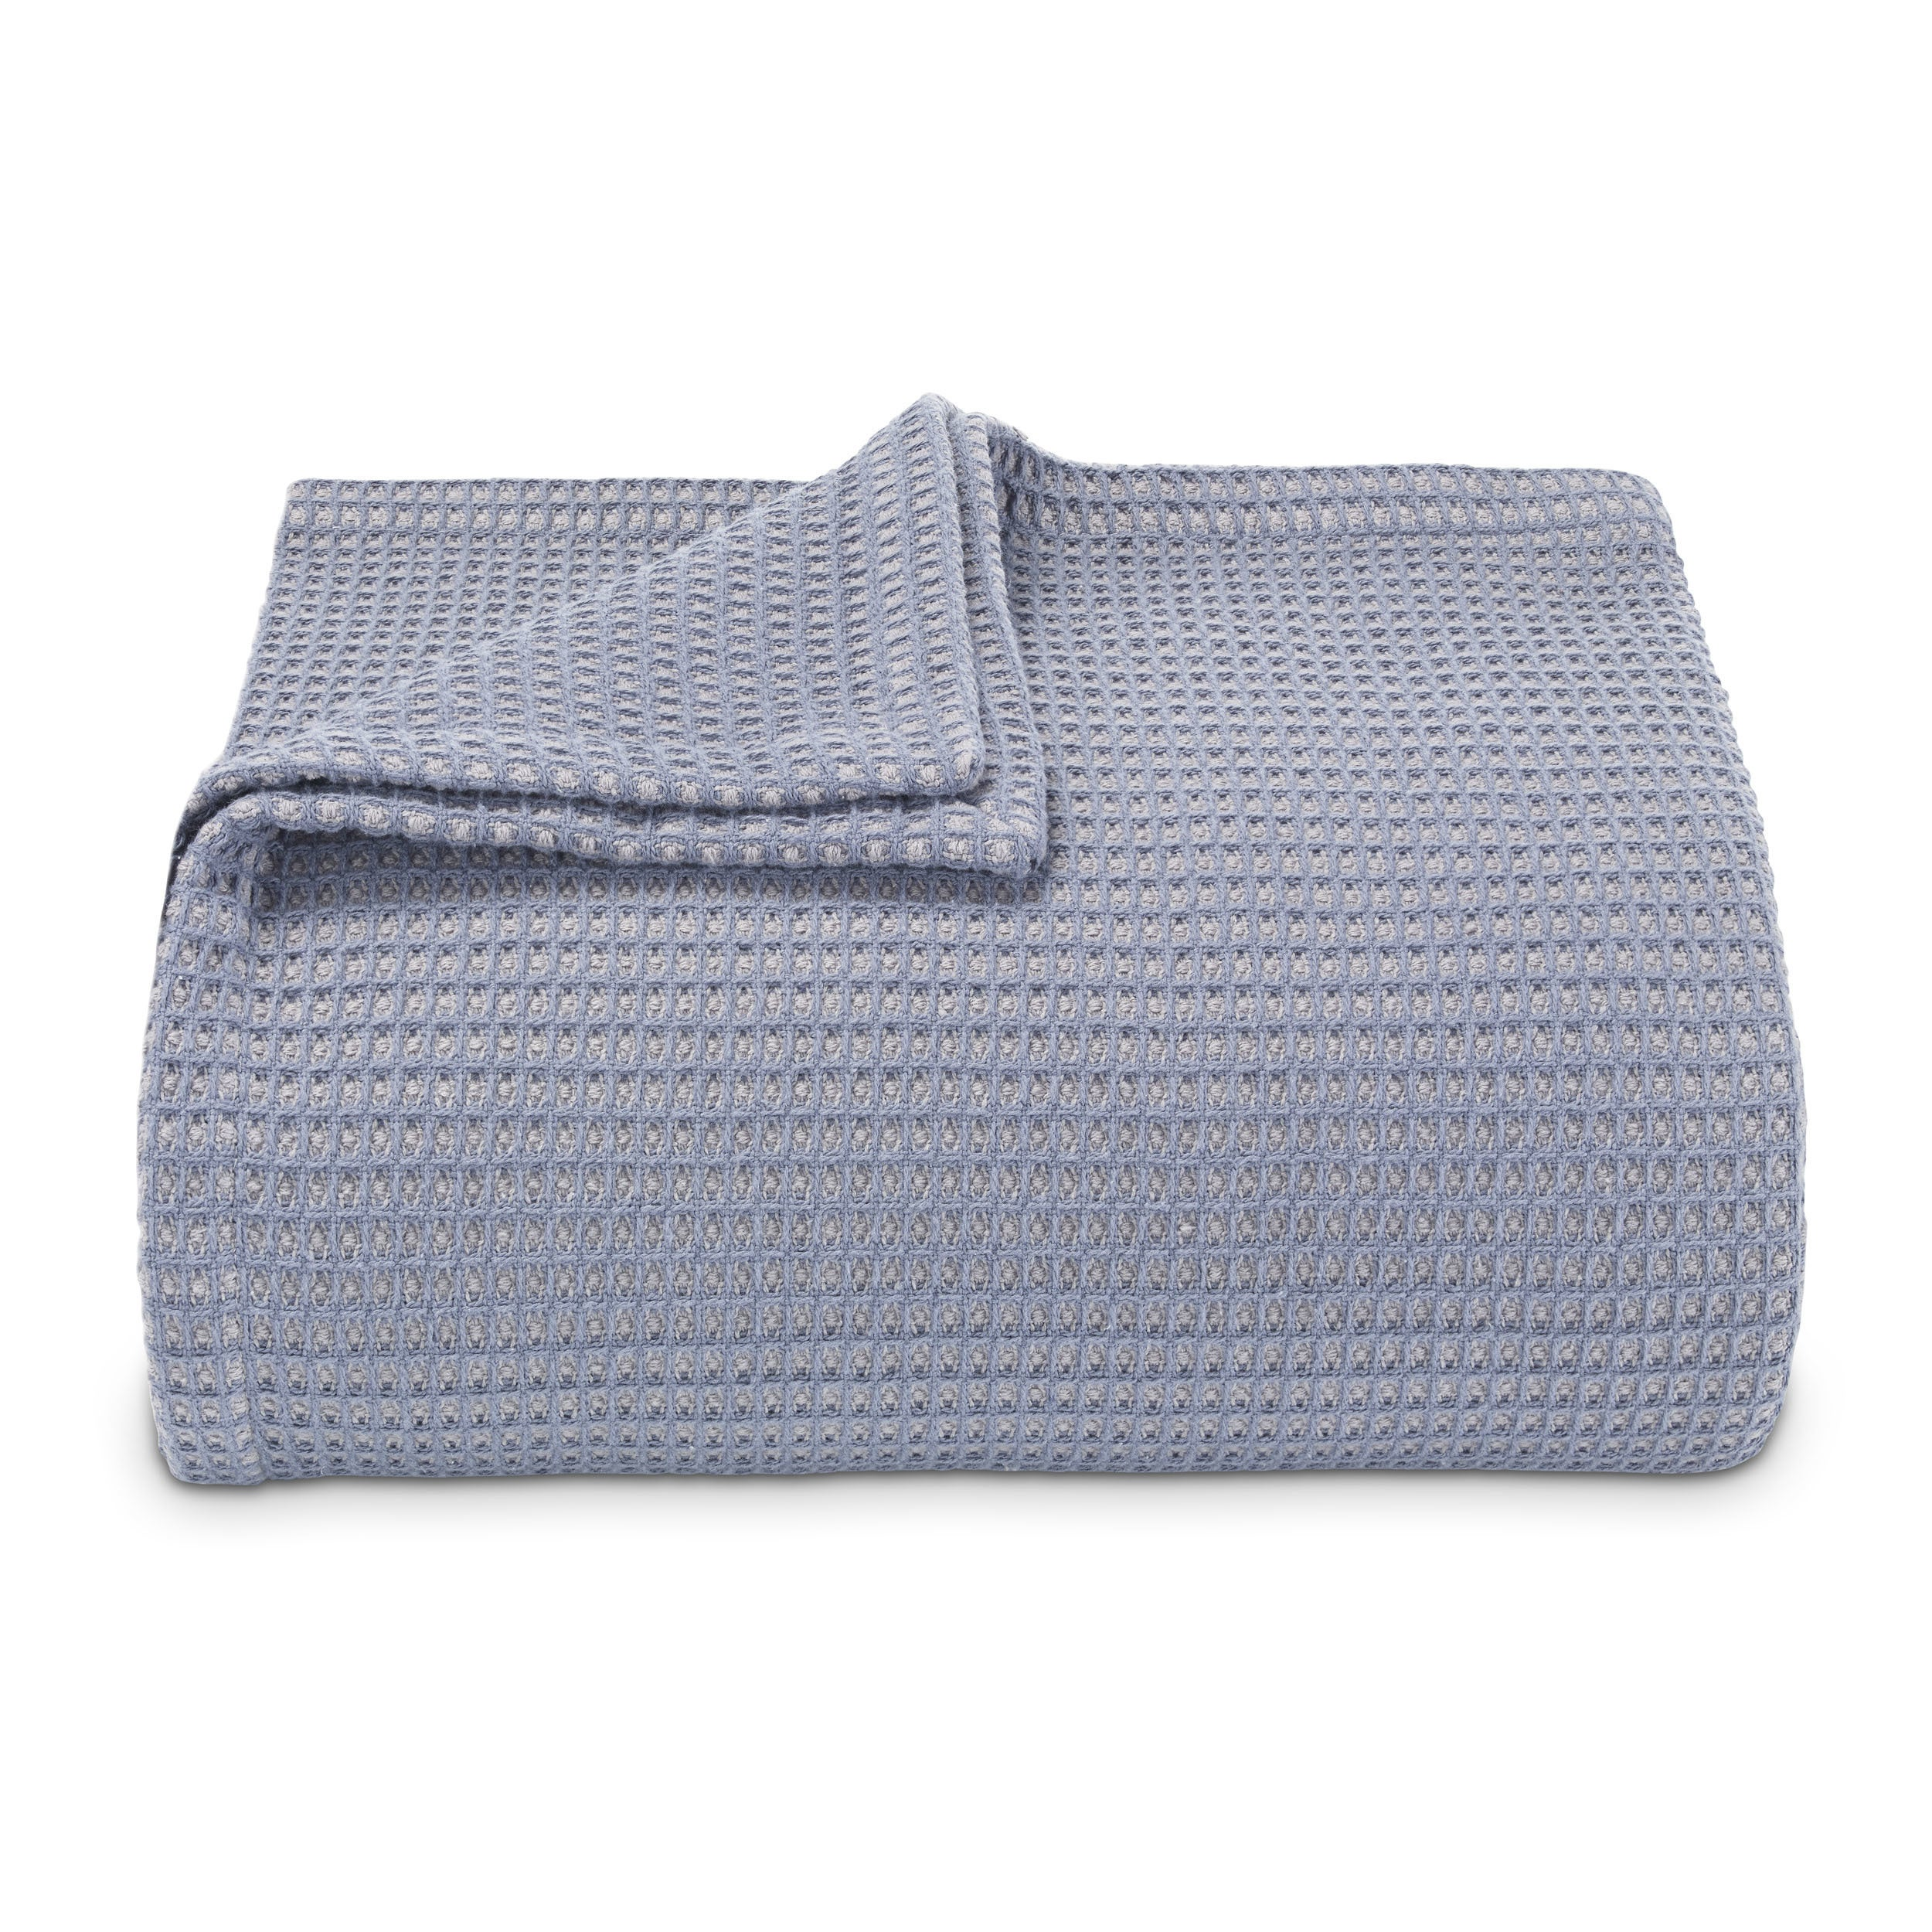 b11d8460c0cc Shop Vera Wang Waffleweave Cotton Blanket - Free Shipping On Orders Over  $45 - Overstock - 16747249